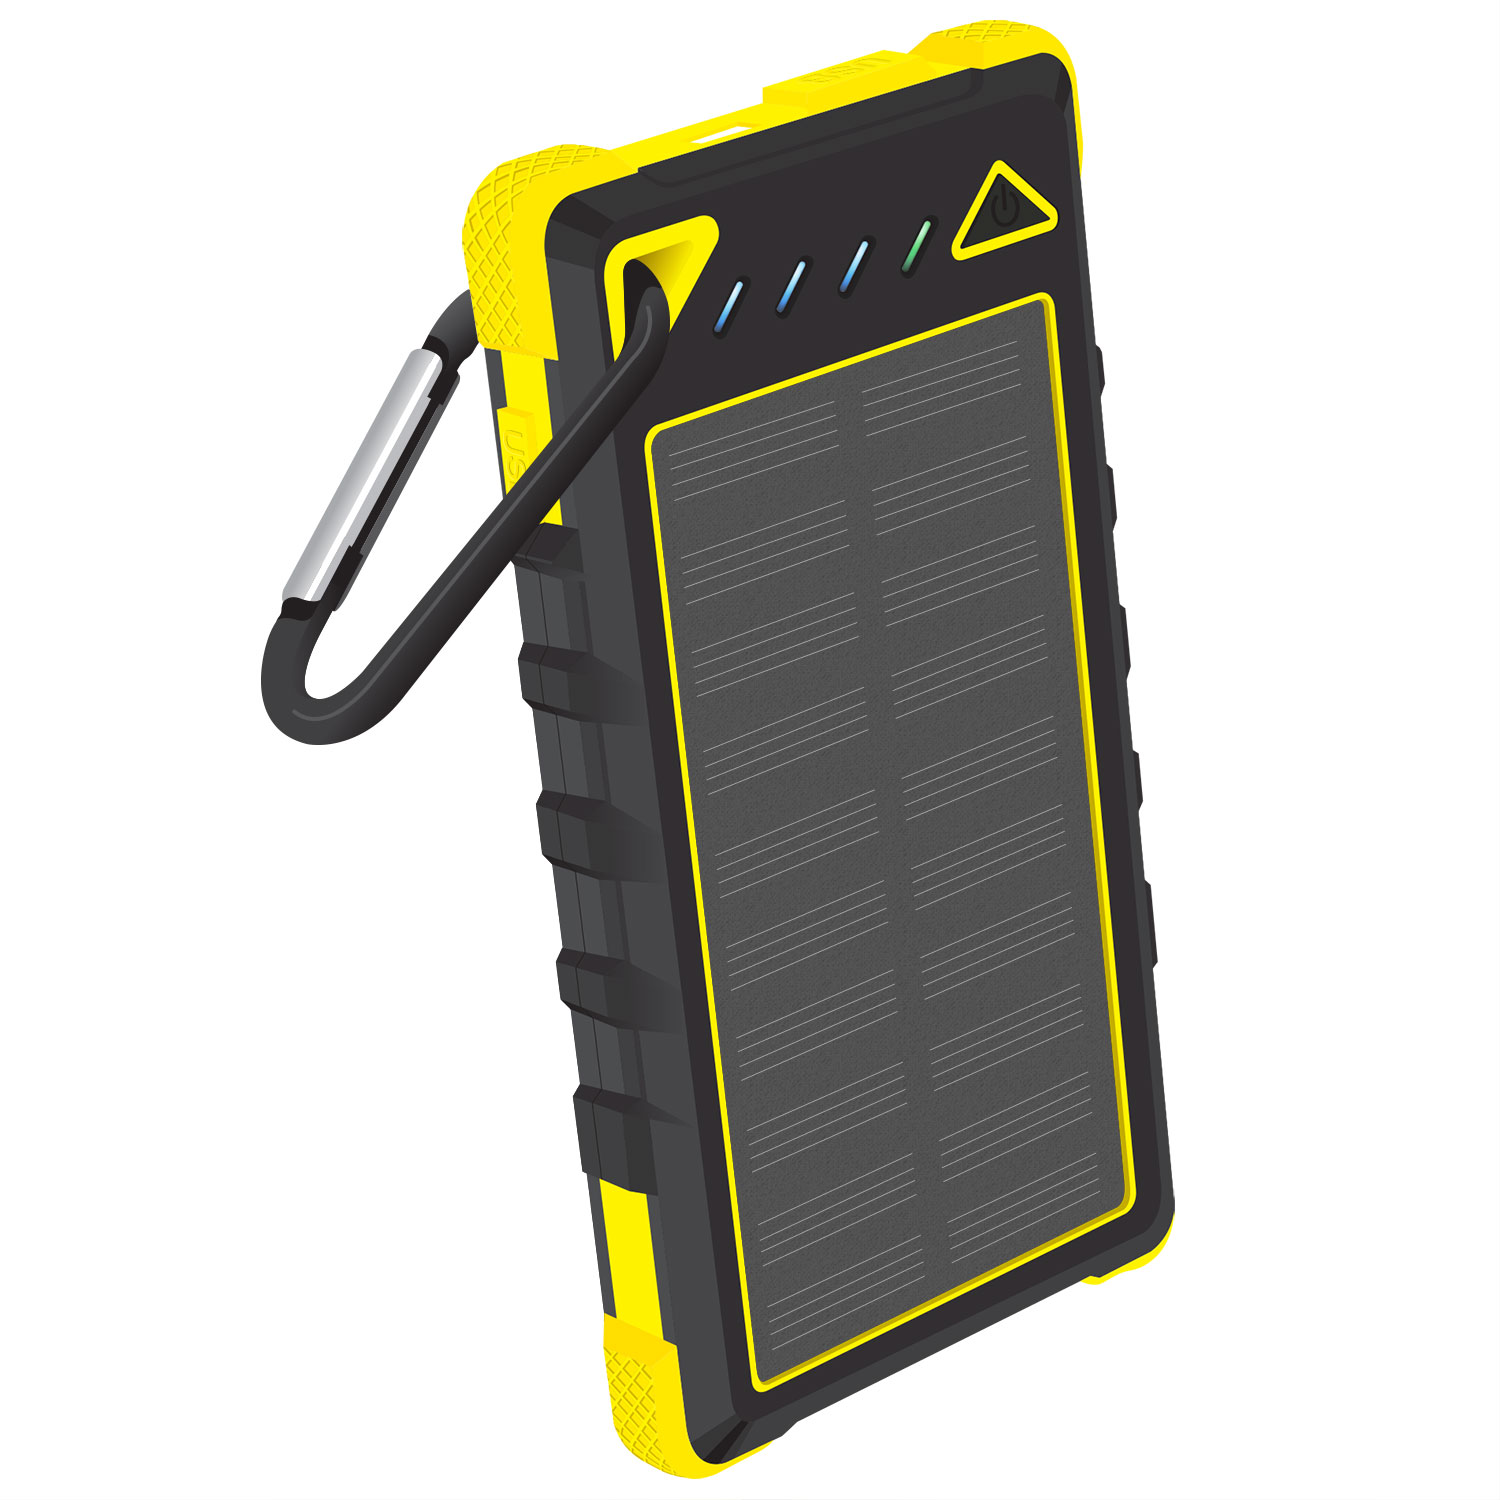 LG G Vista 2 Solar Powered Portable PowerBank Yellow